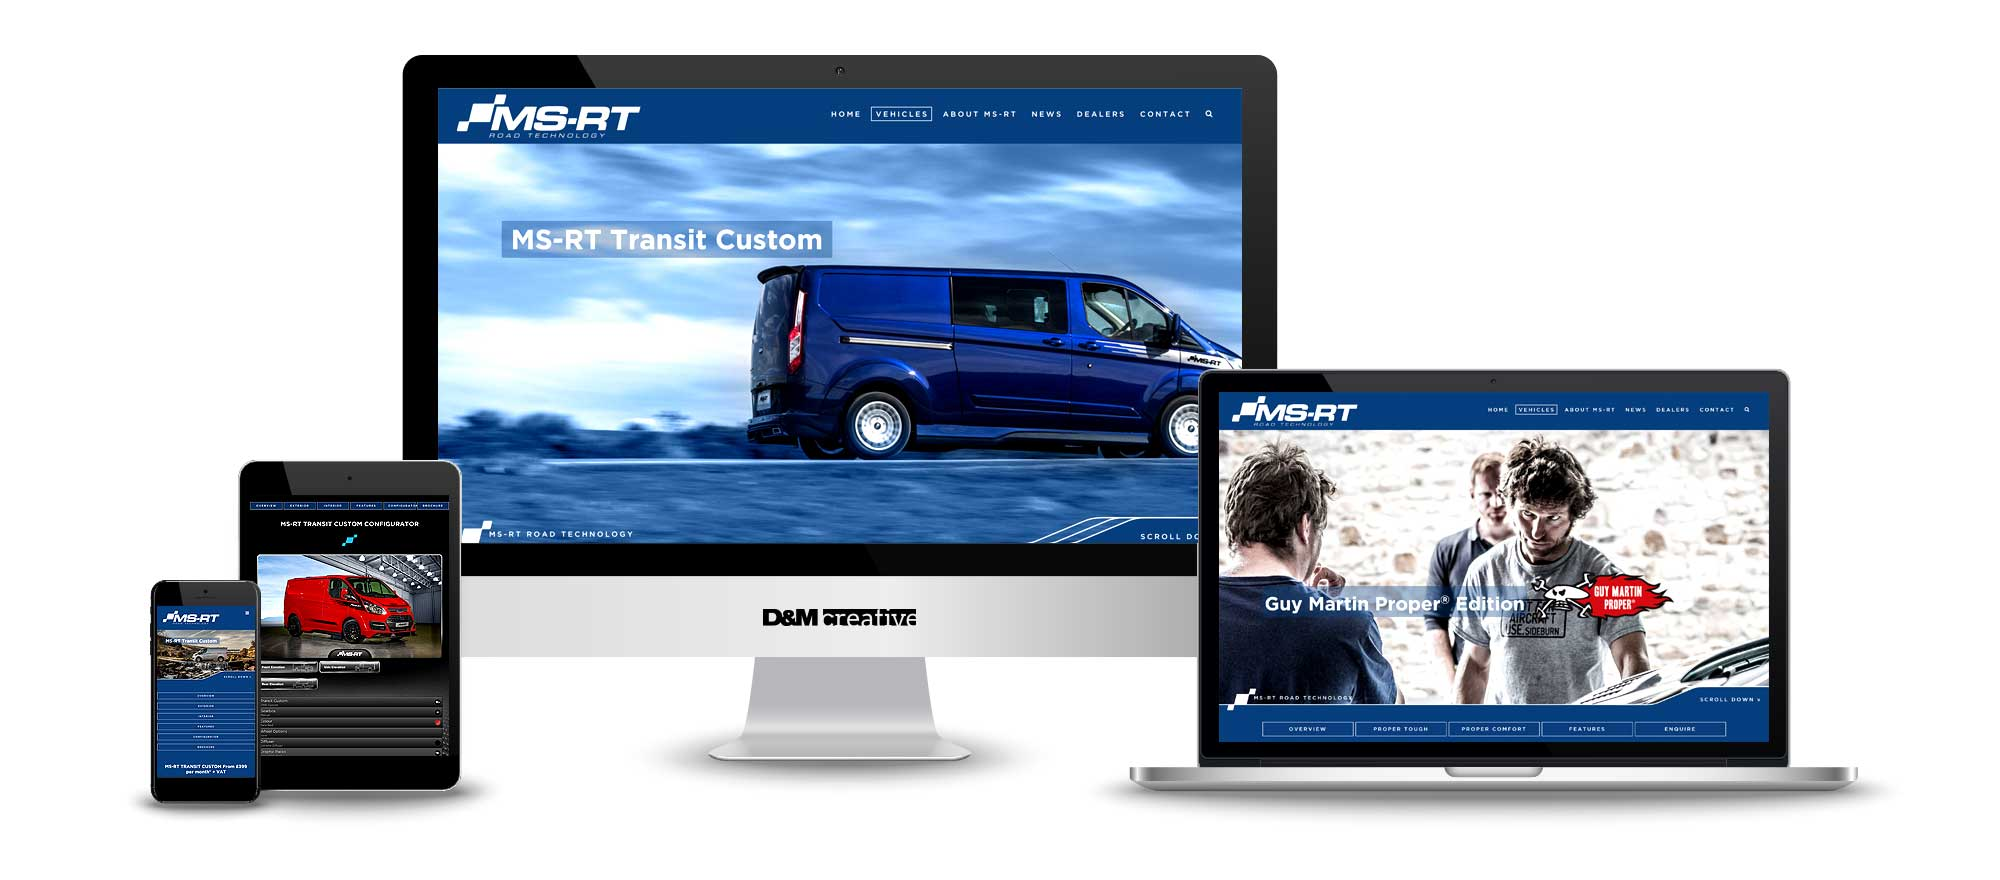 MSRT Website Design Screens, Mobile, Desktop, Tablet